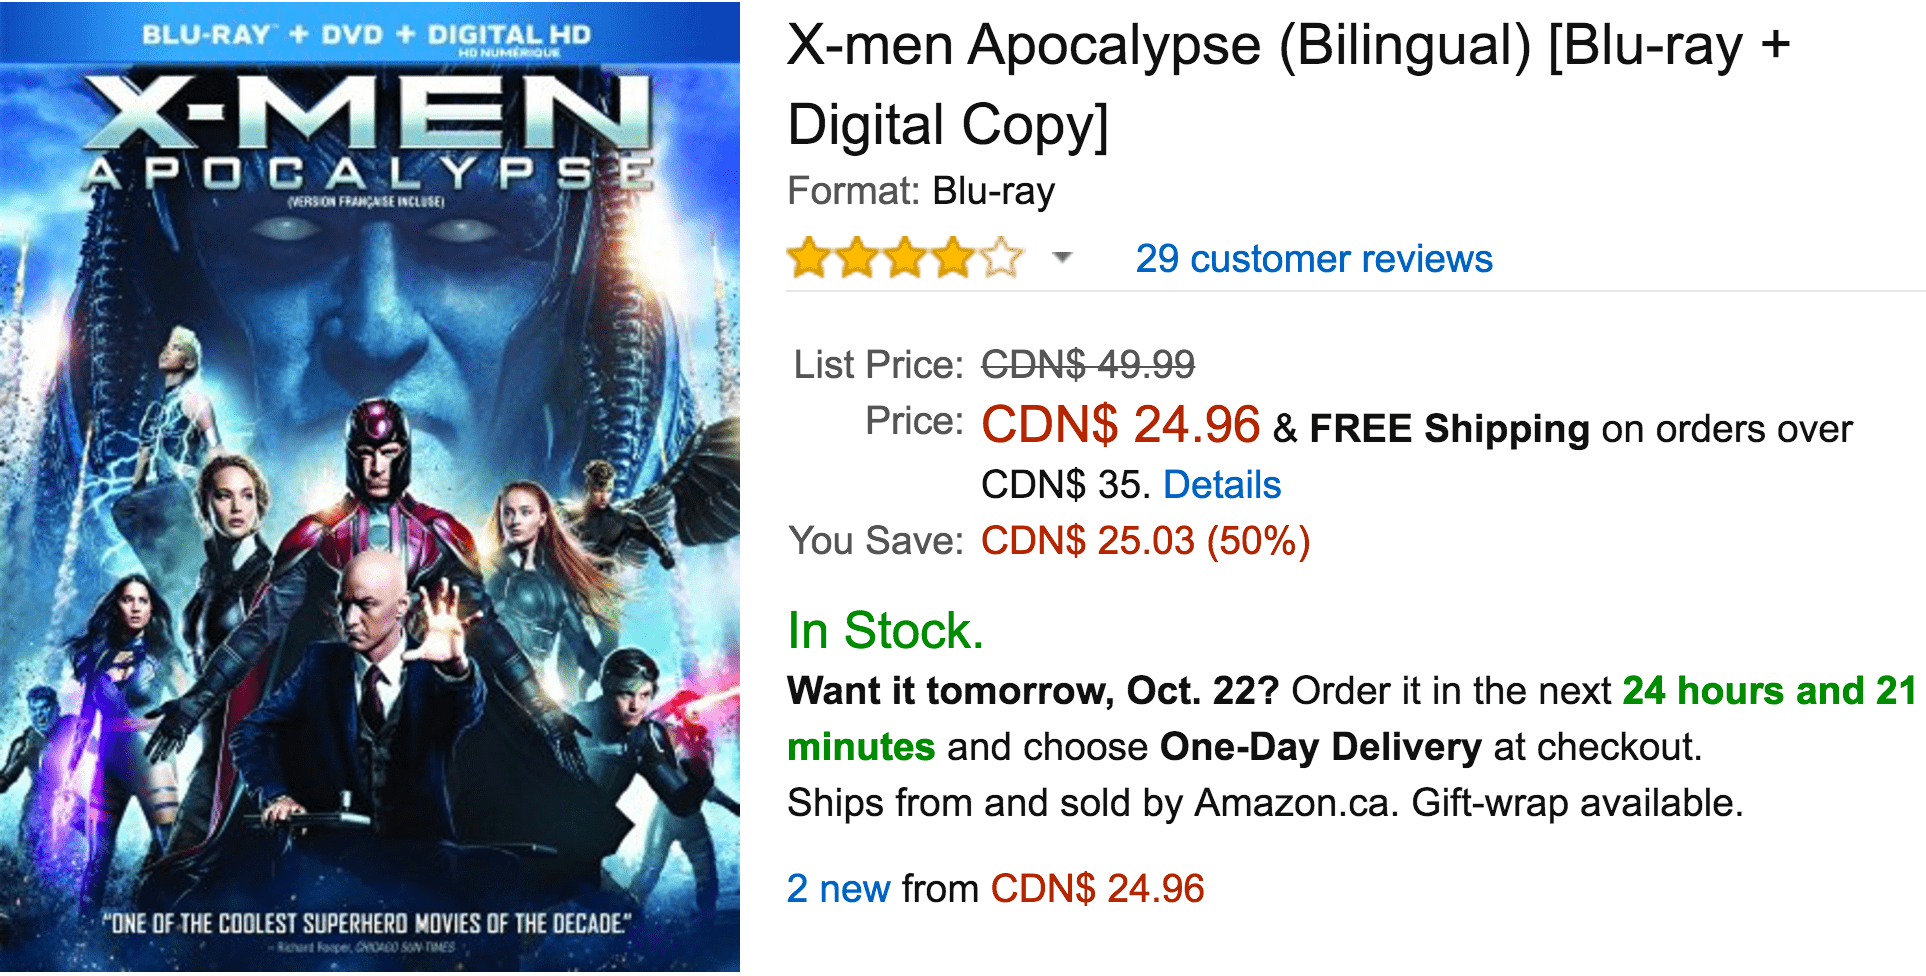 Amazon Canada Deals Of The Day: Save 50% On X-men Apocalypse, 50% On Select Headset, 50% Off Halloween Costumes & More Deals